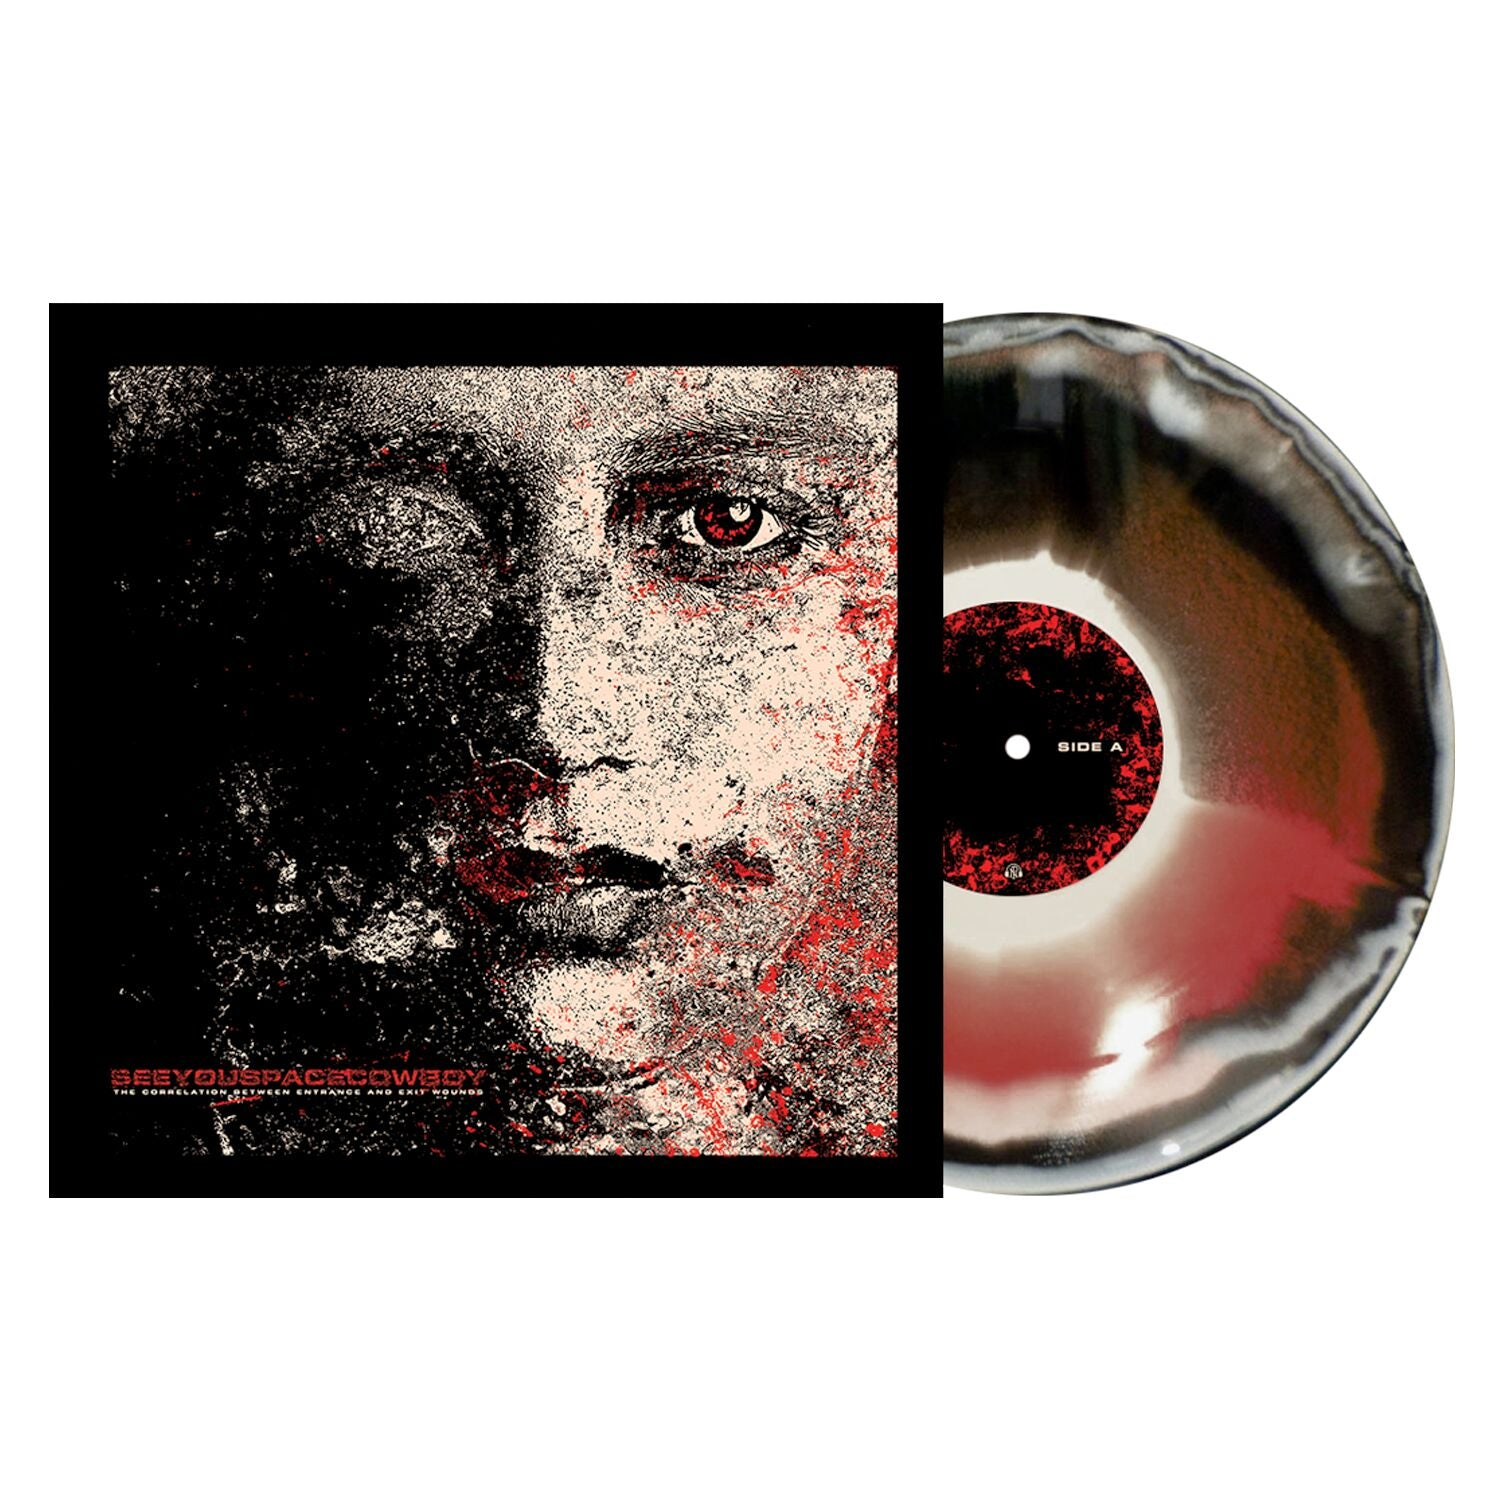 SeeYouSpaceCowboy 'The Correlation Between Entrance and Exit Wounds' PN Exclusive 1 - Black / Red'ish / Bone Aside-B-side